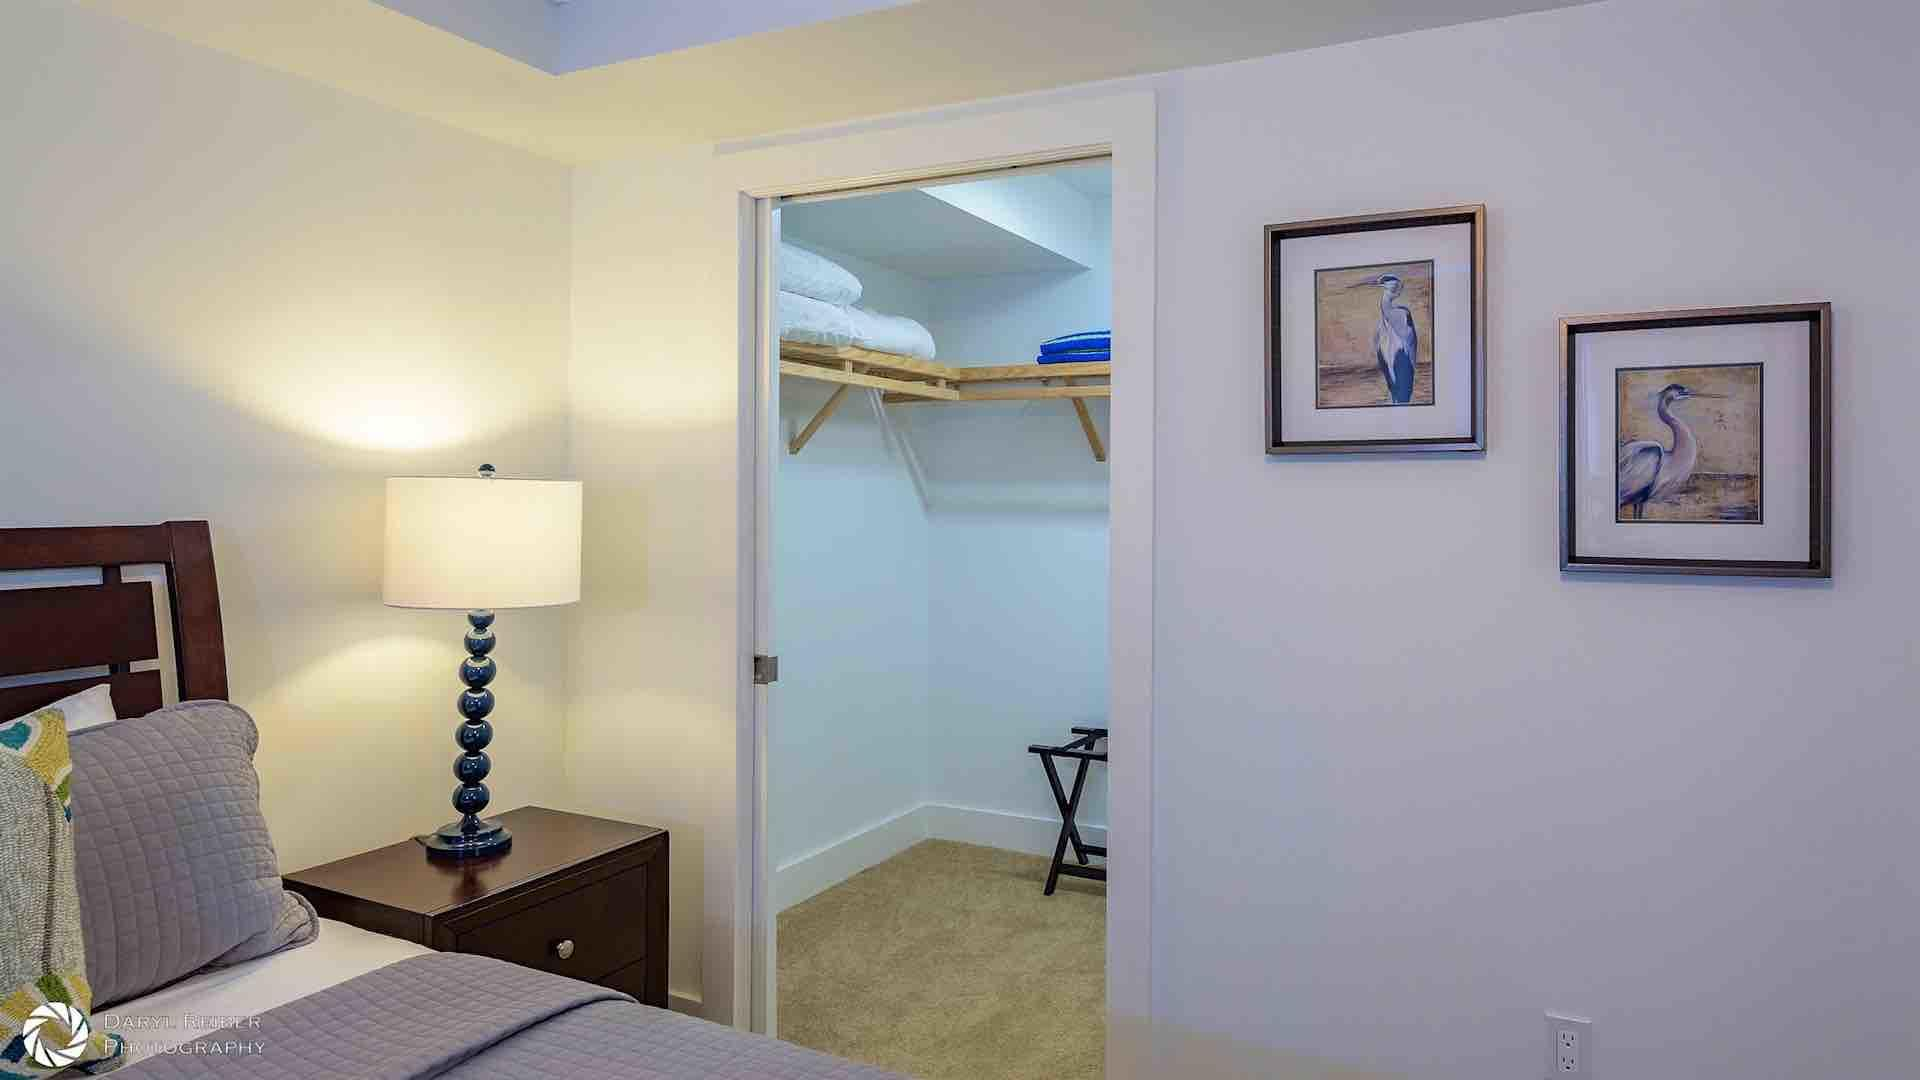 The second master suite also has a large walk-in closet and a flat screen TV...